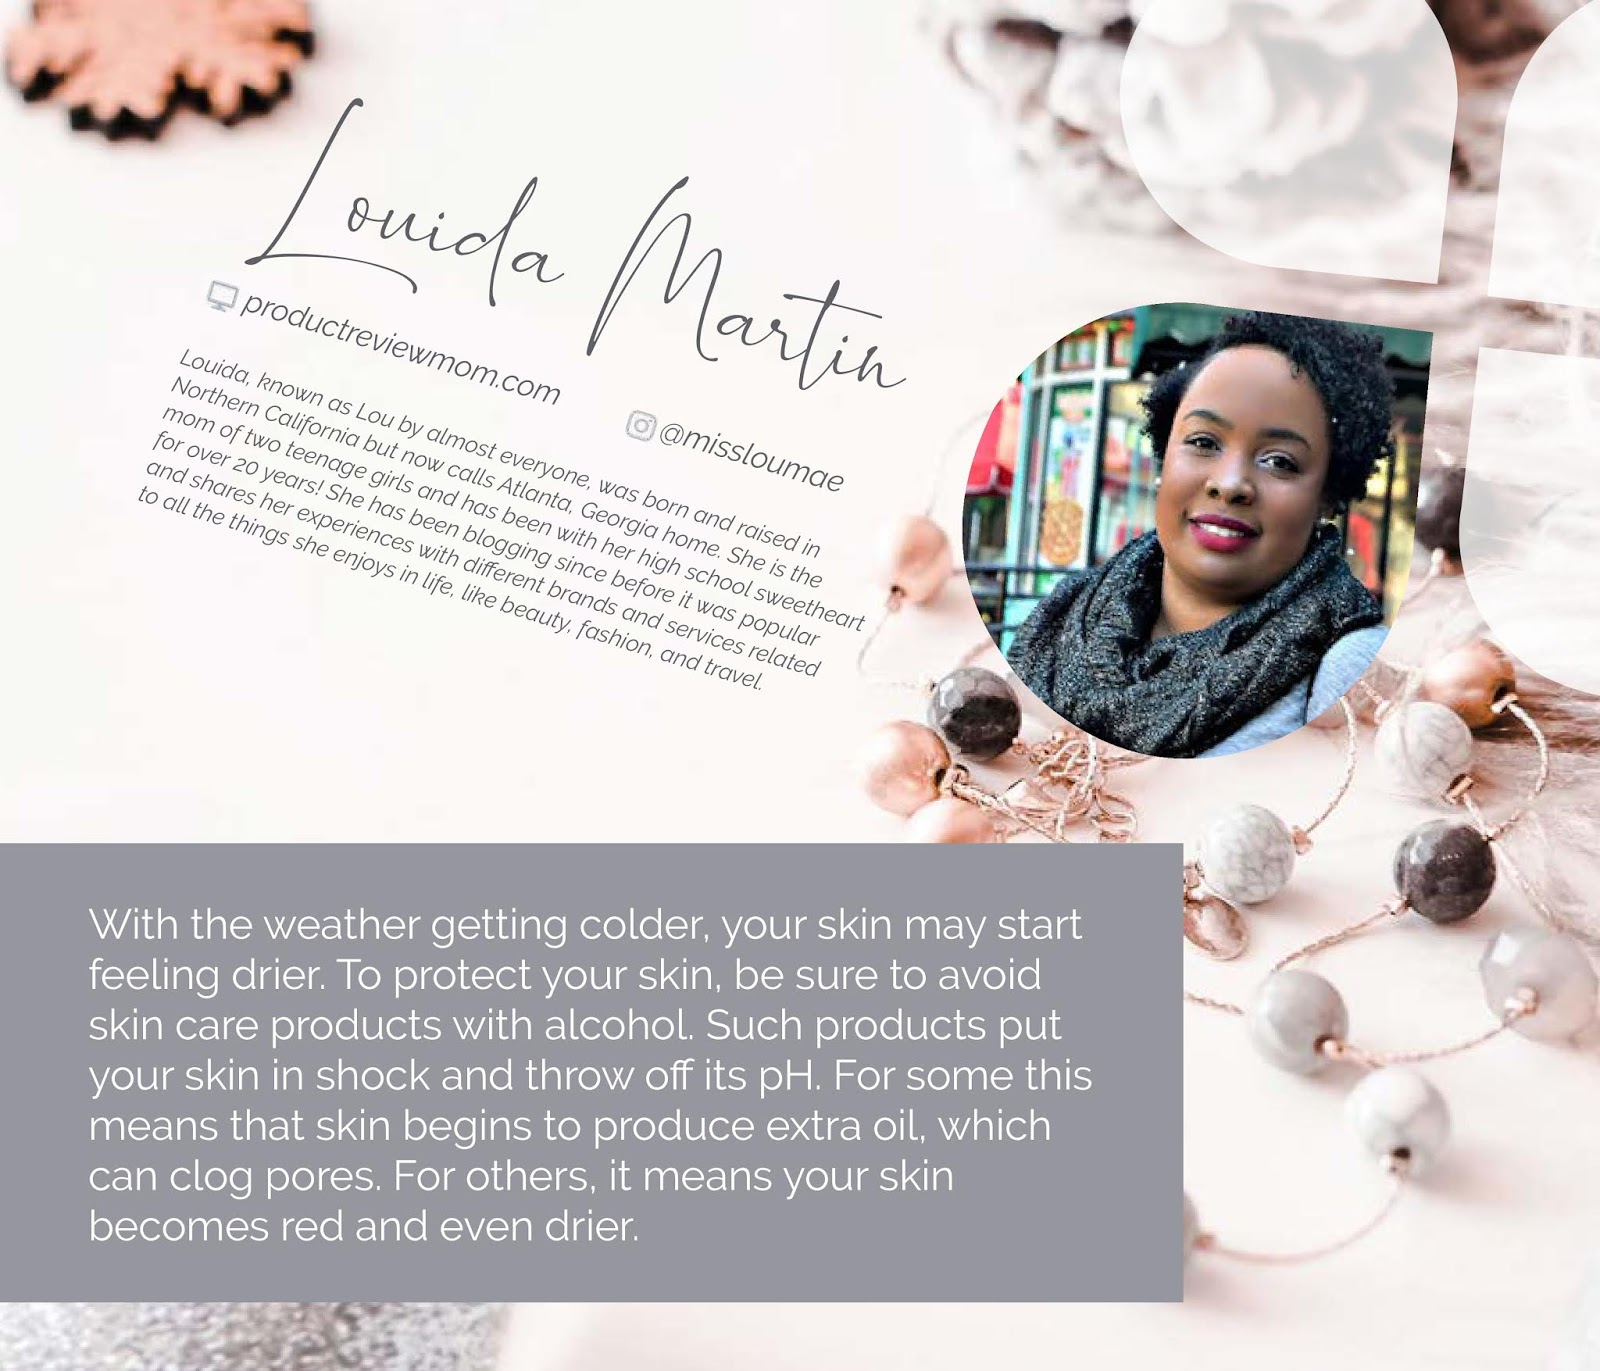 Lexli Holiday Beauty Guide with Louida Martin from www.productreviewmom.com